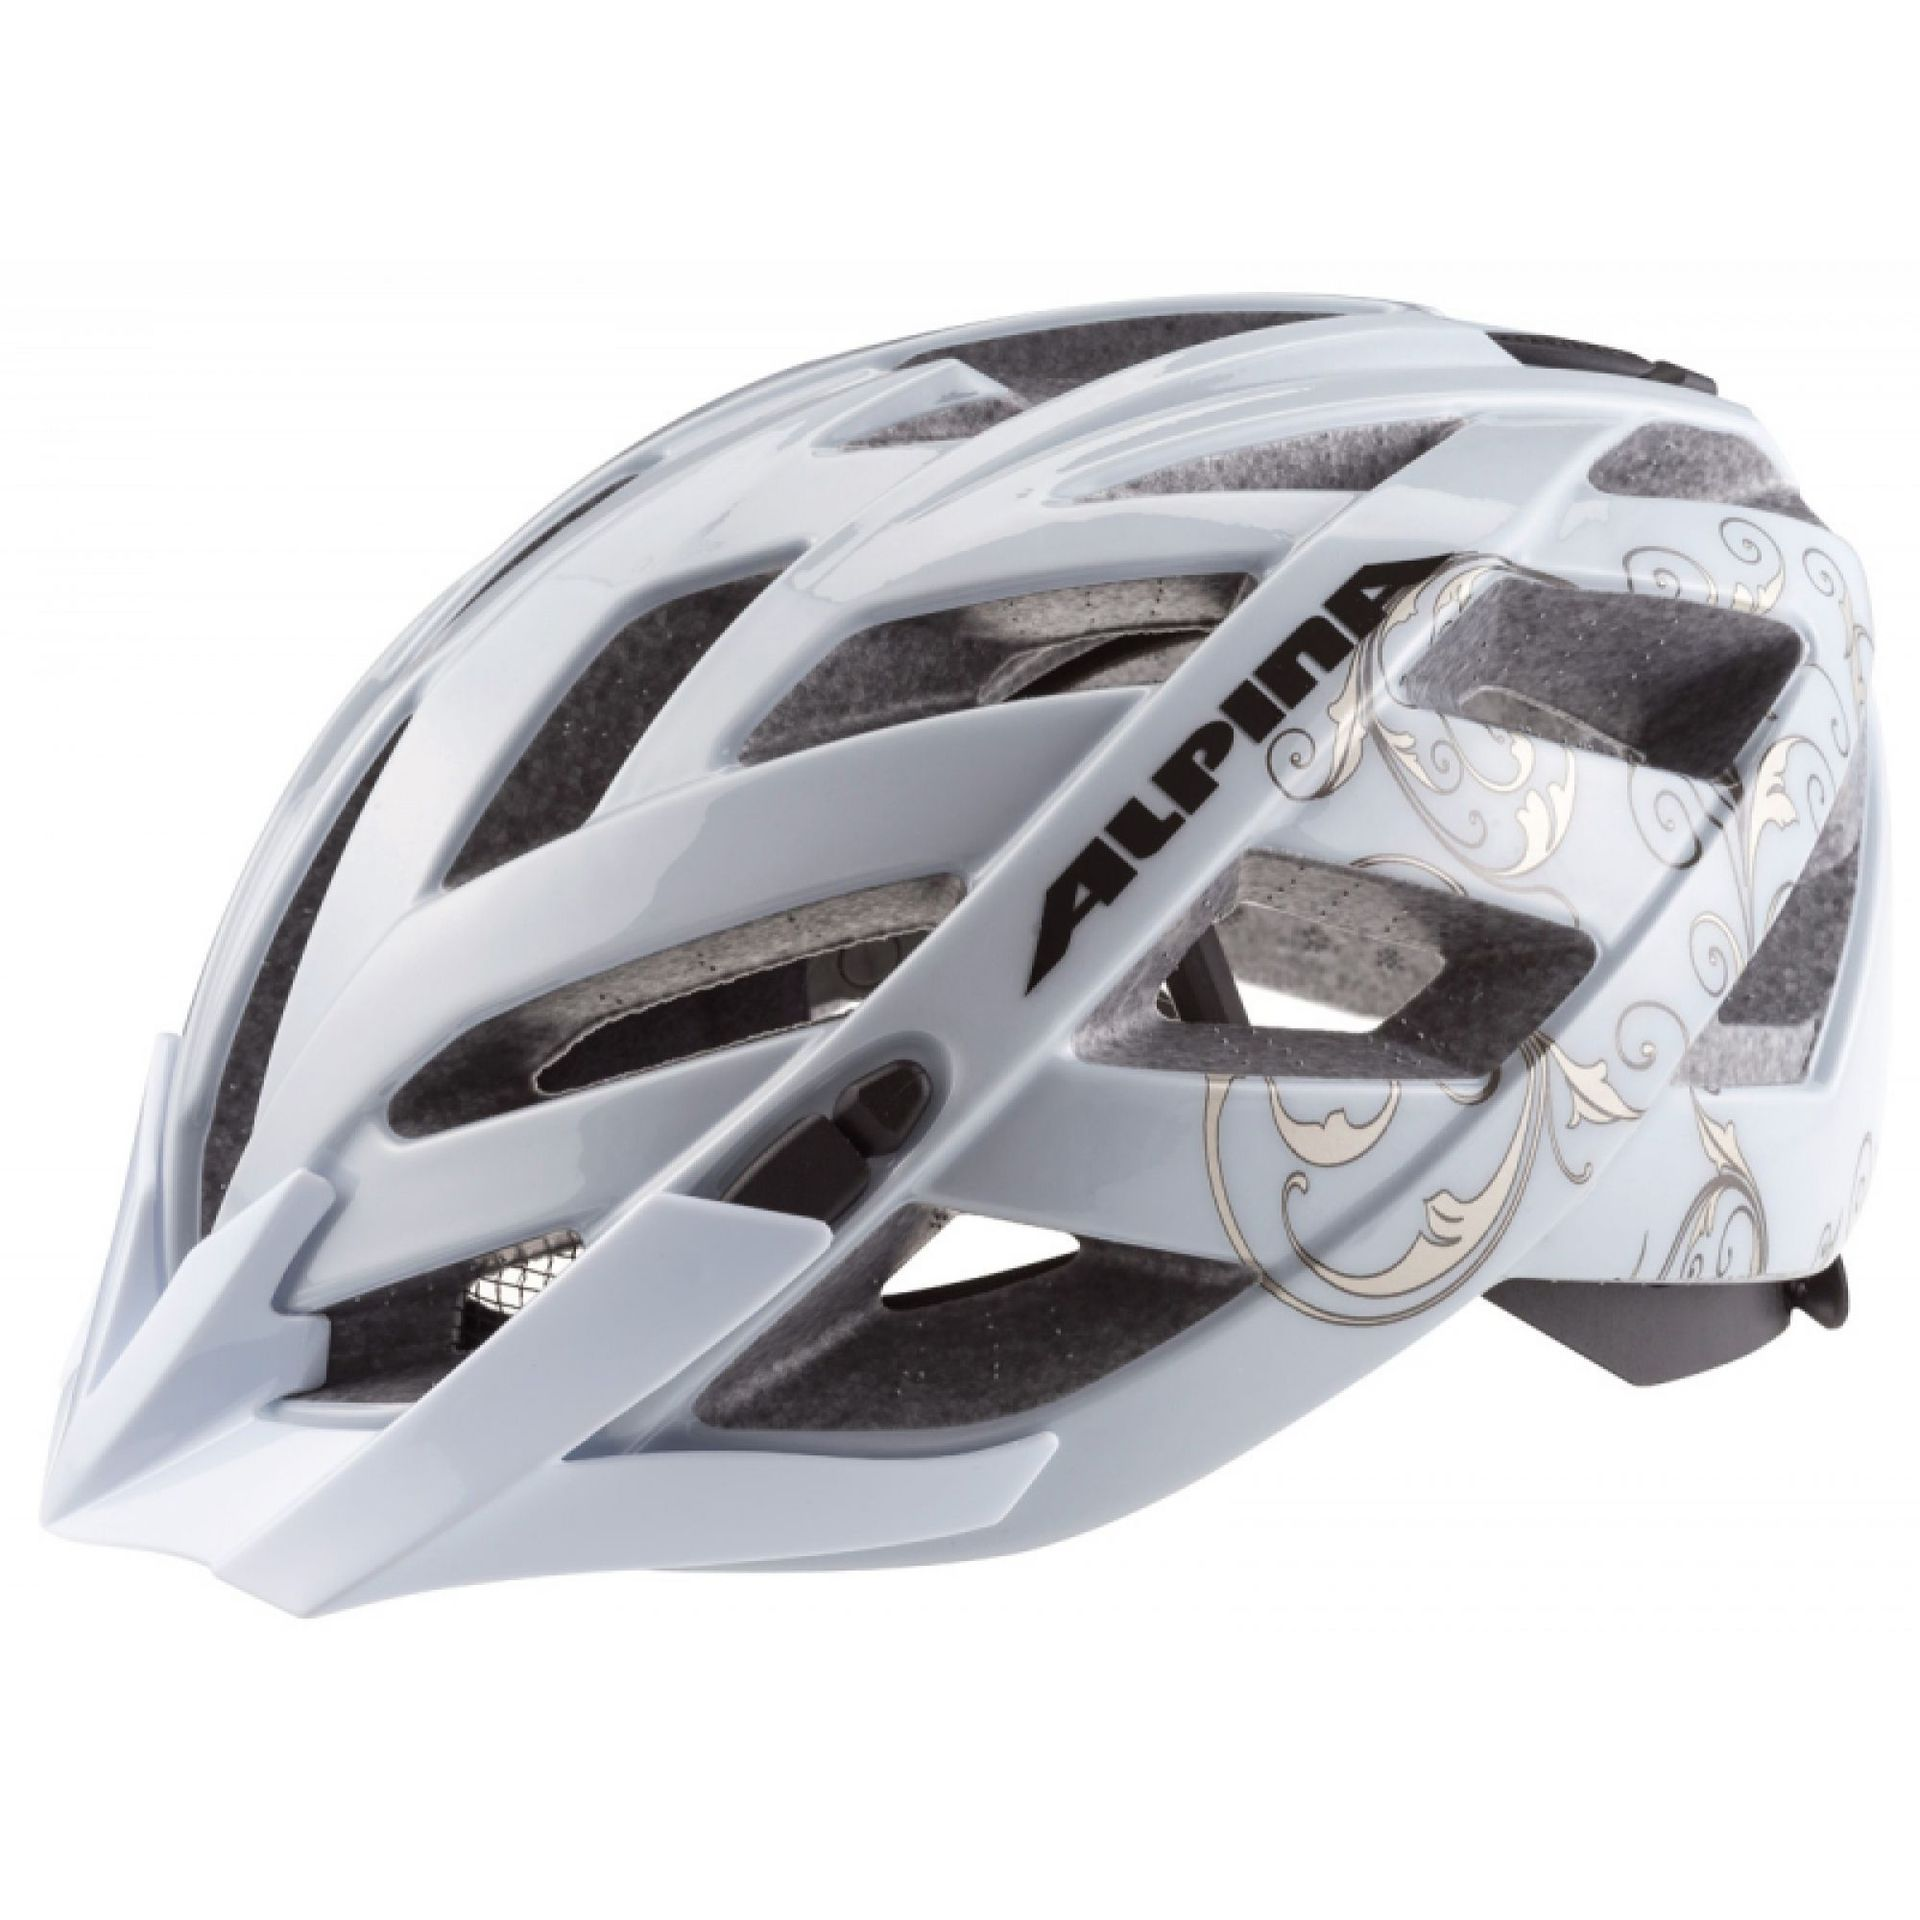 KASK ROWEROWY ALPINA PANOMA white-prosecco